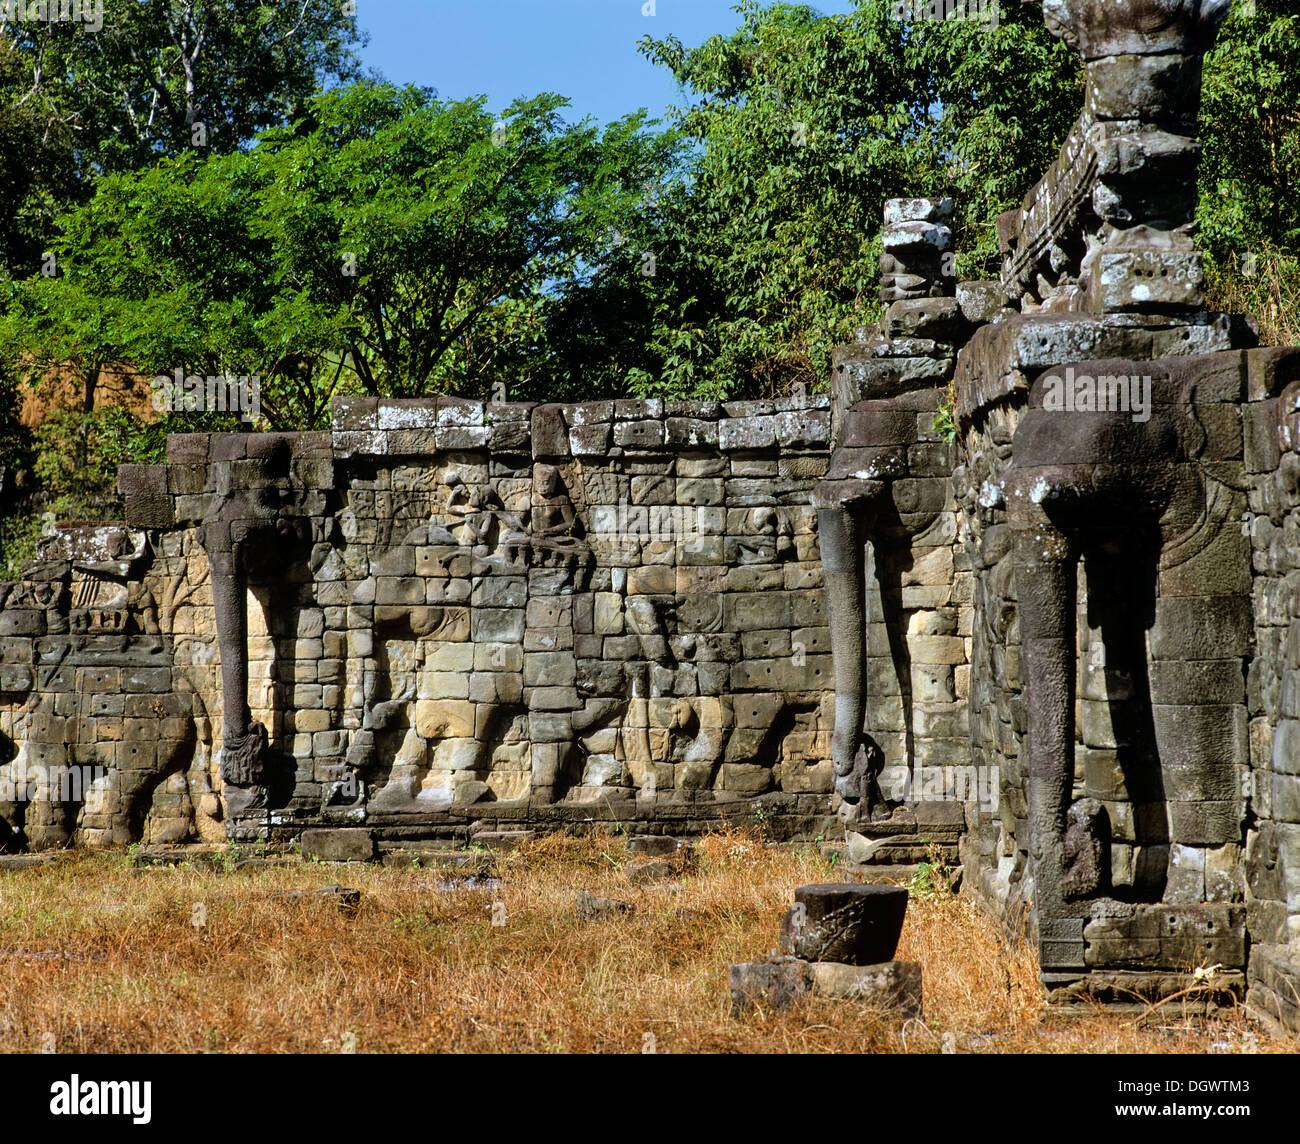 Terrace of the Elephants, wall-reliefs, Angkor Thom, Siem Reap Province, Cambodia - Stock Image